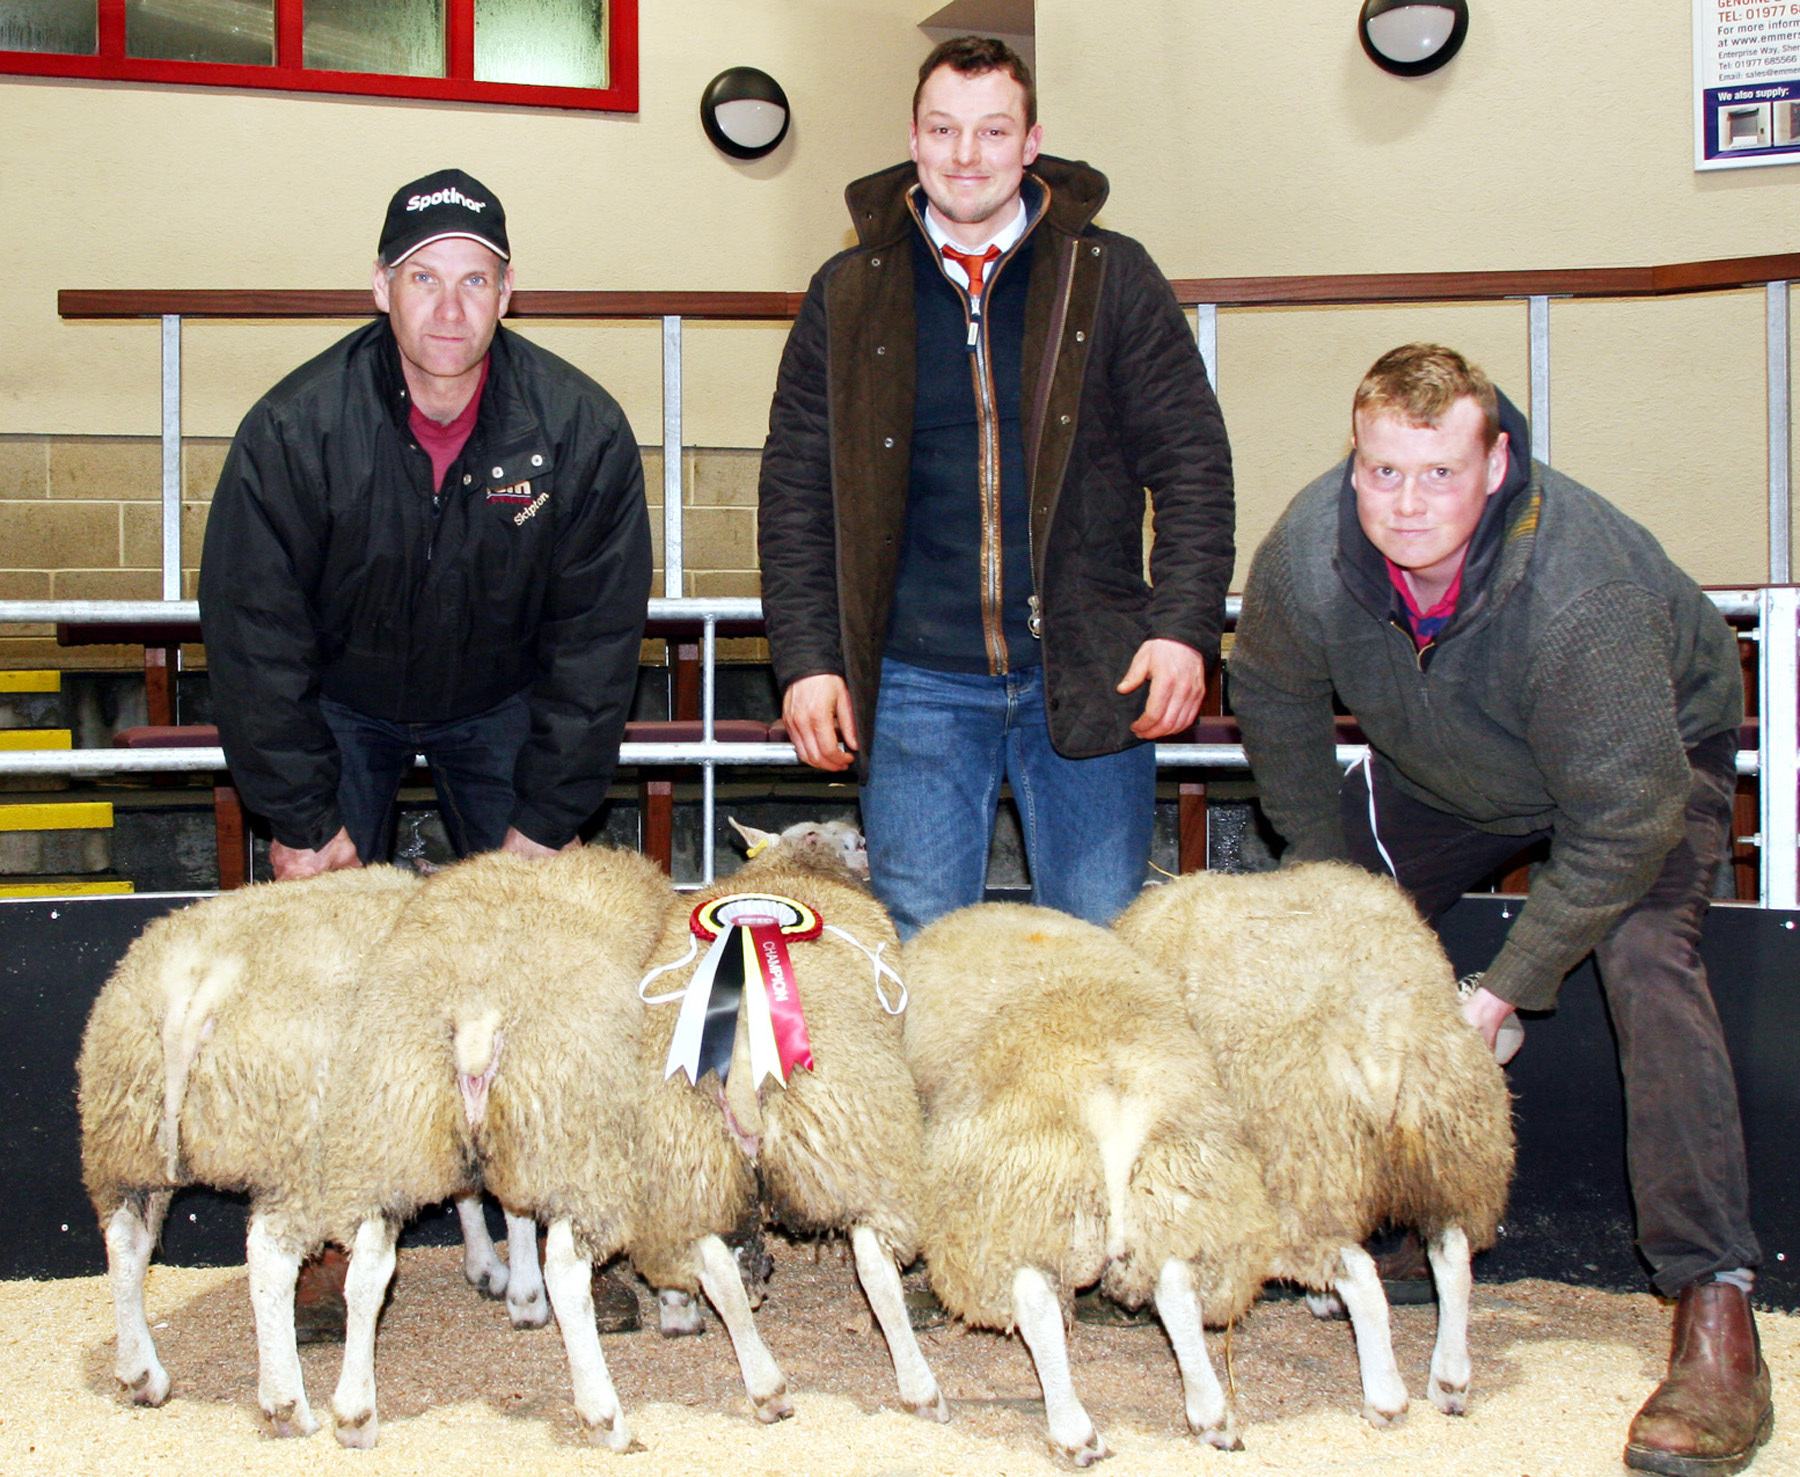 Rob Ellis is pictured right with the family's New Year prime lamb champions at Skipton, joined by judge and buyer George Cropper Jnr and Craven Cattle Marts' Andrew Fisher Picture by Moule Media Skipton.